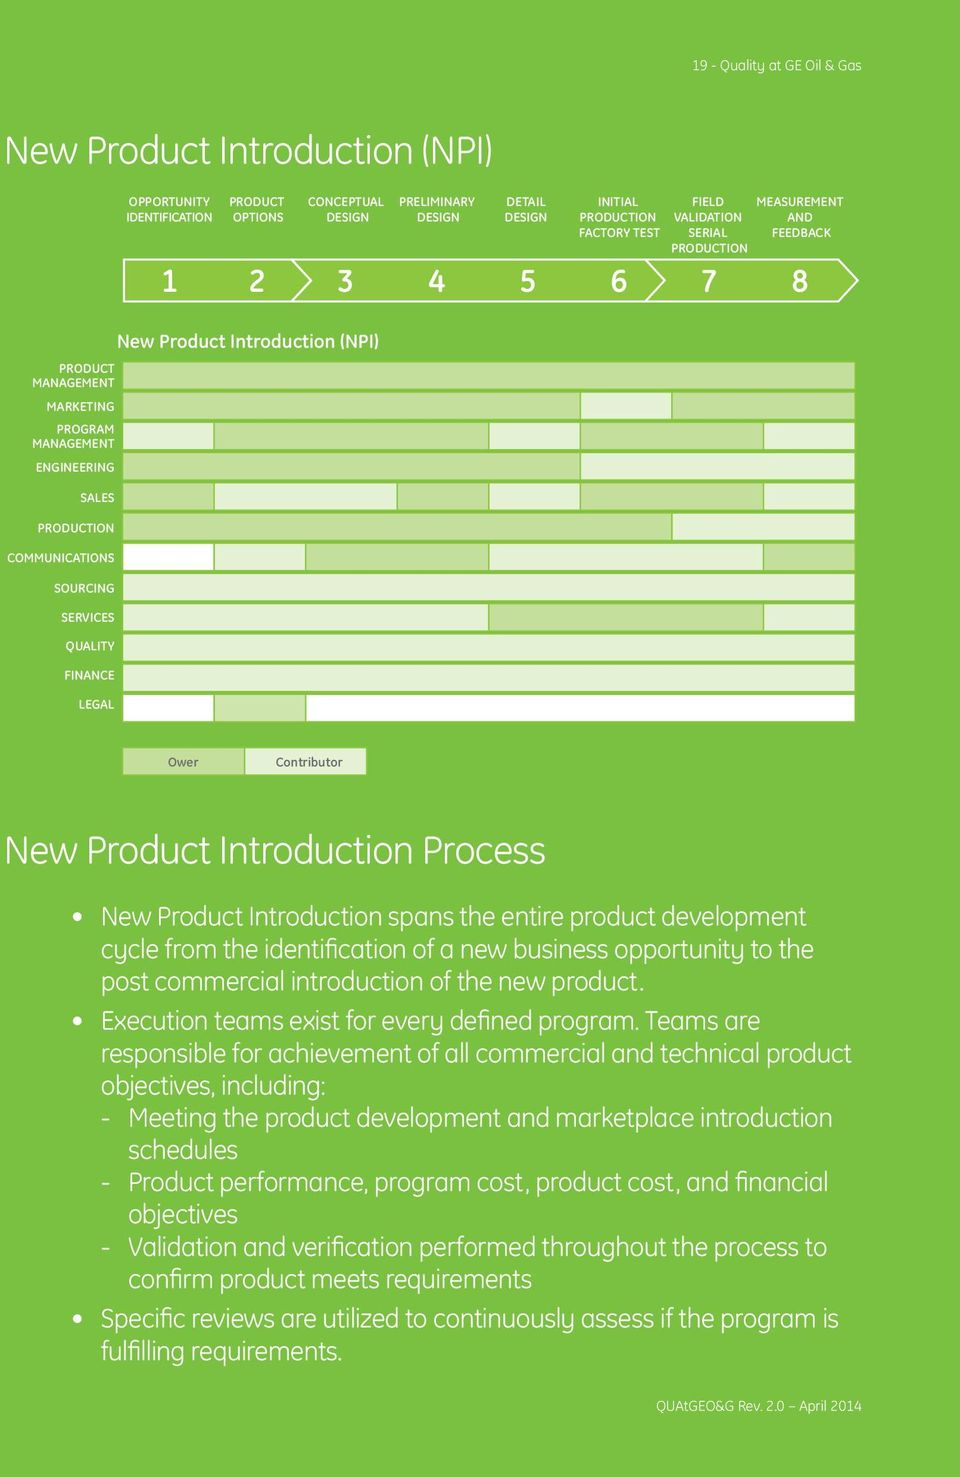 LEGAL New Product Introduction (NPI) Ower Contributor New Product Introduction Process New Product Introduction spans the entire product development cycle from the identification of a new business